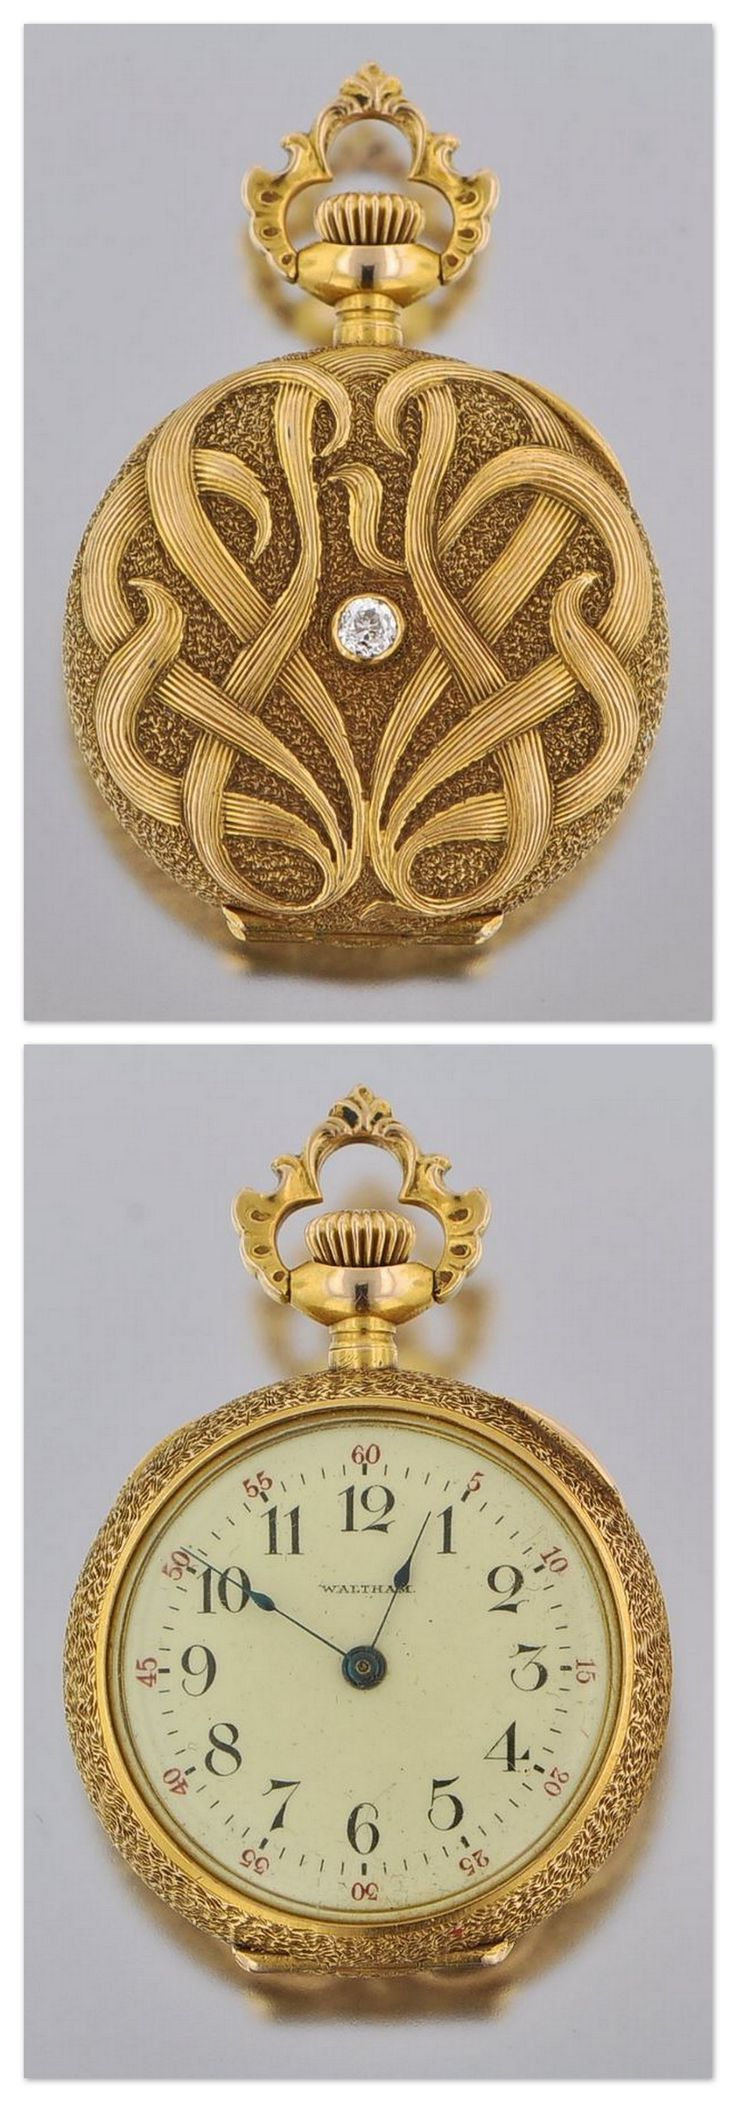 An Art Nouveau Gold and Diamond Pocket Watch by Waltham, American, ca. 1900. - watches for women online, swiss luxury watches, mens watches all black *sponsored https://www.pinterest.com/watches_watch/ https://www.pinterest.com/explore/watches/ https://www.pinterest.com/watches_watch/womens-watches/ https://www.groupon.com/goods/watches